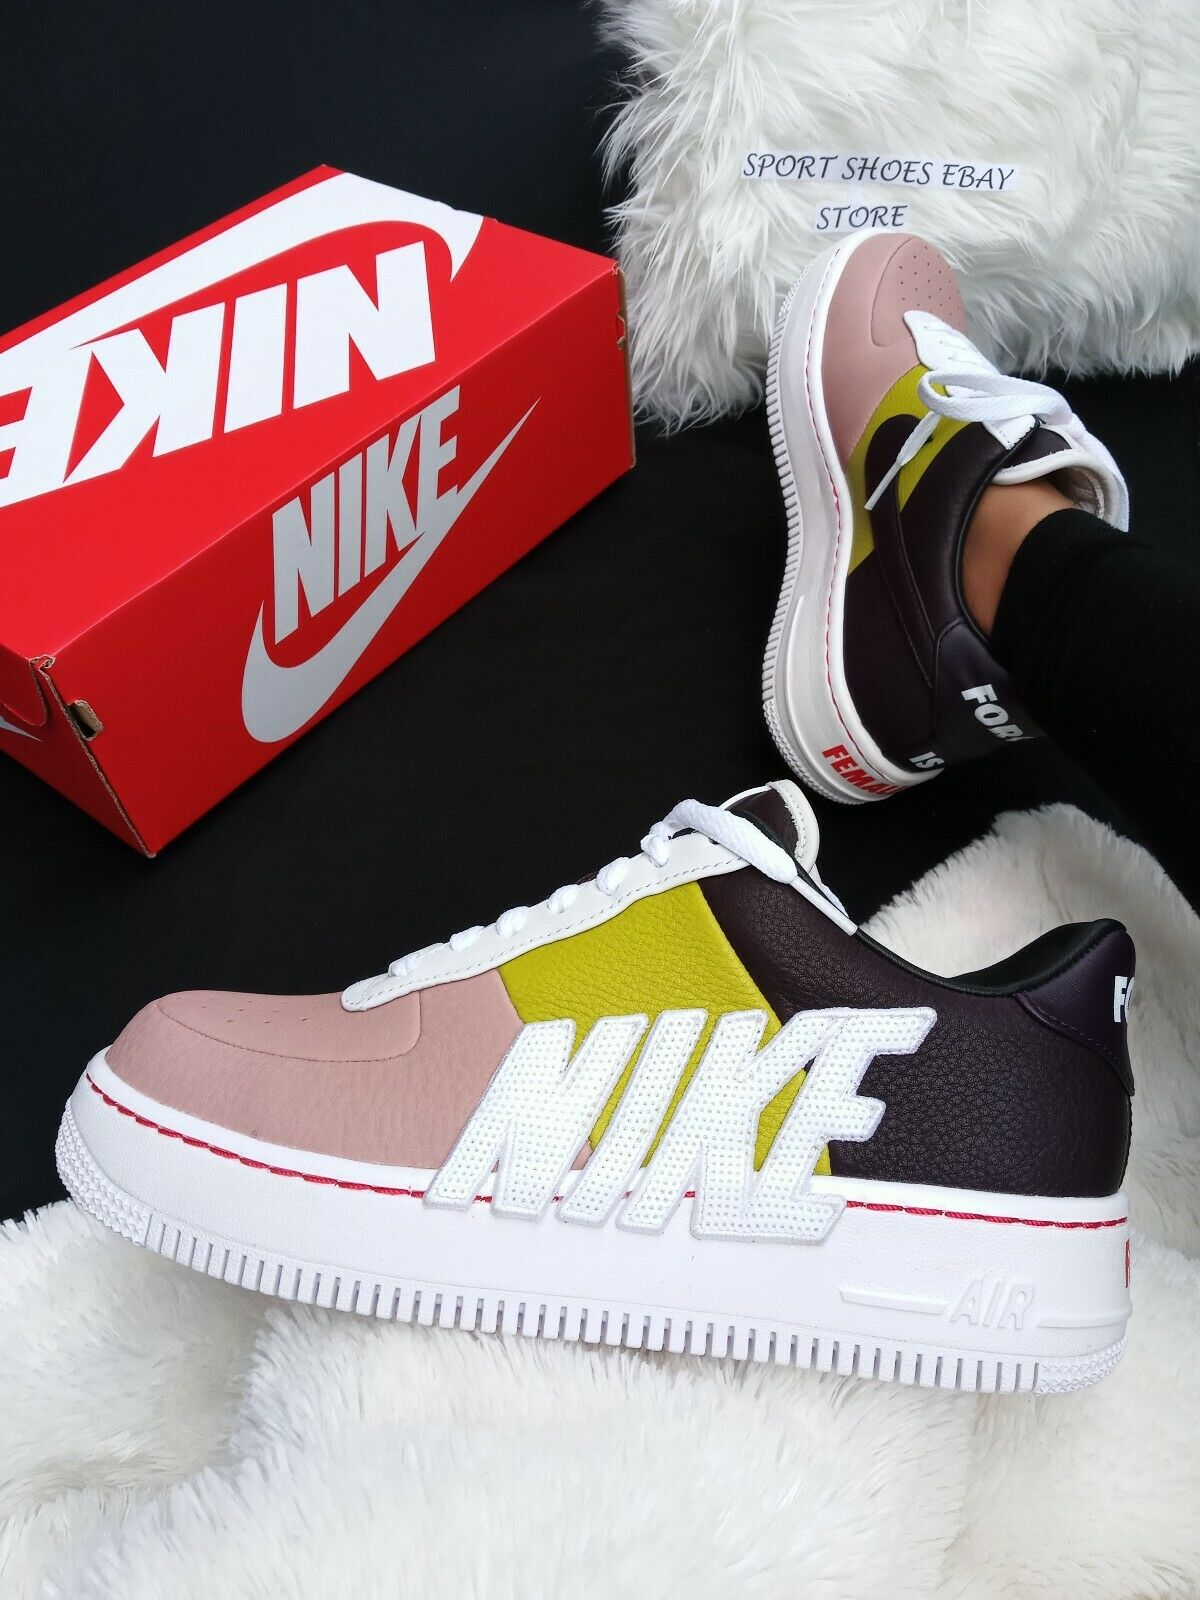 SIZE 10.5 WOMEN'S FEMALE Nike AF 1 Upstep LX WINE CACTUS 898421-602 SNEAKERS